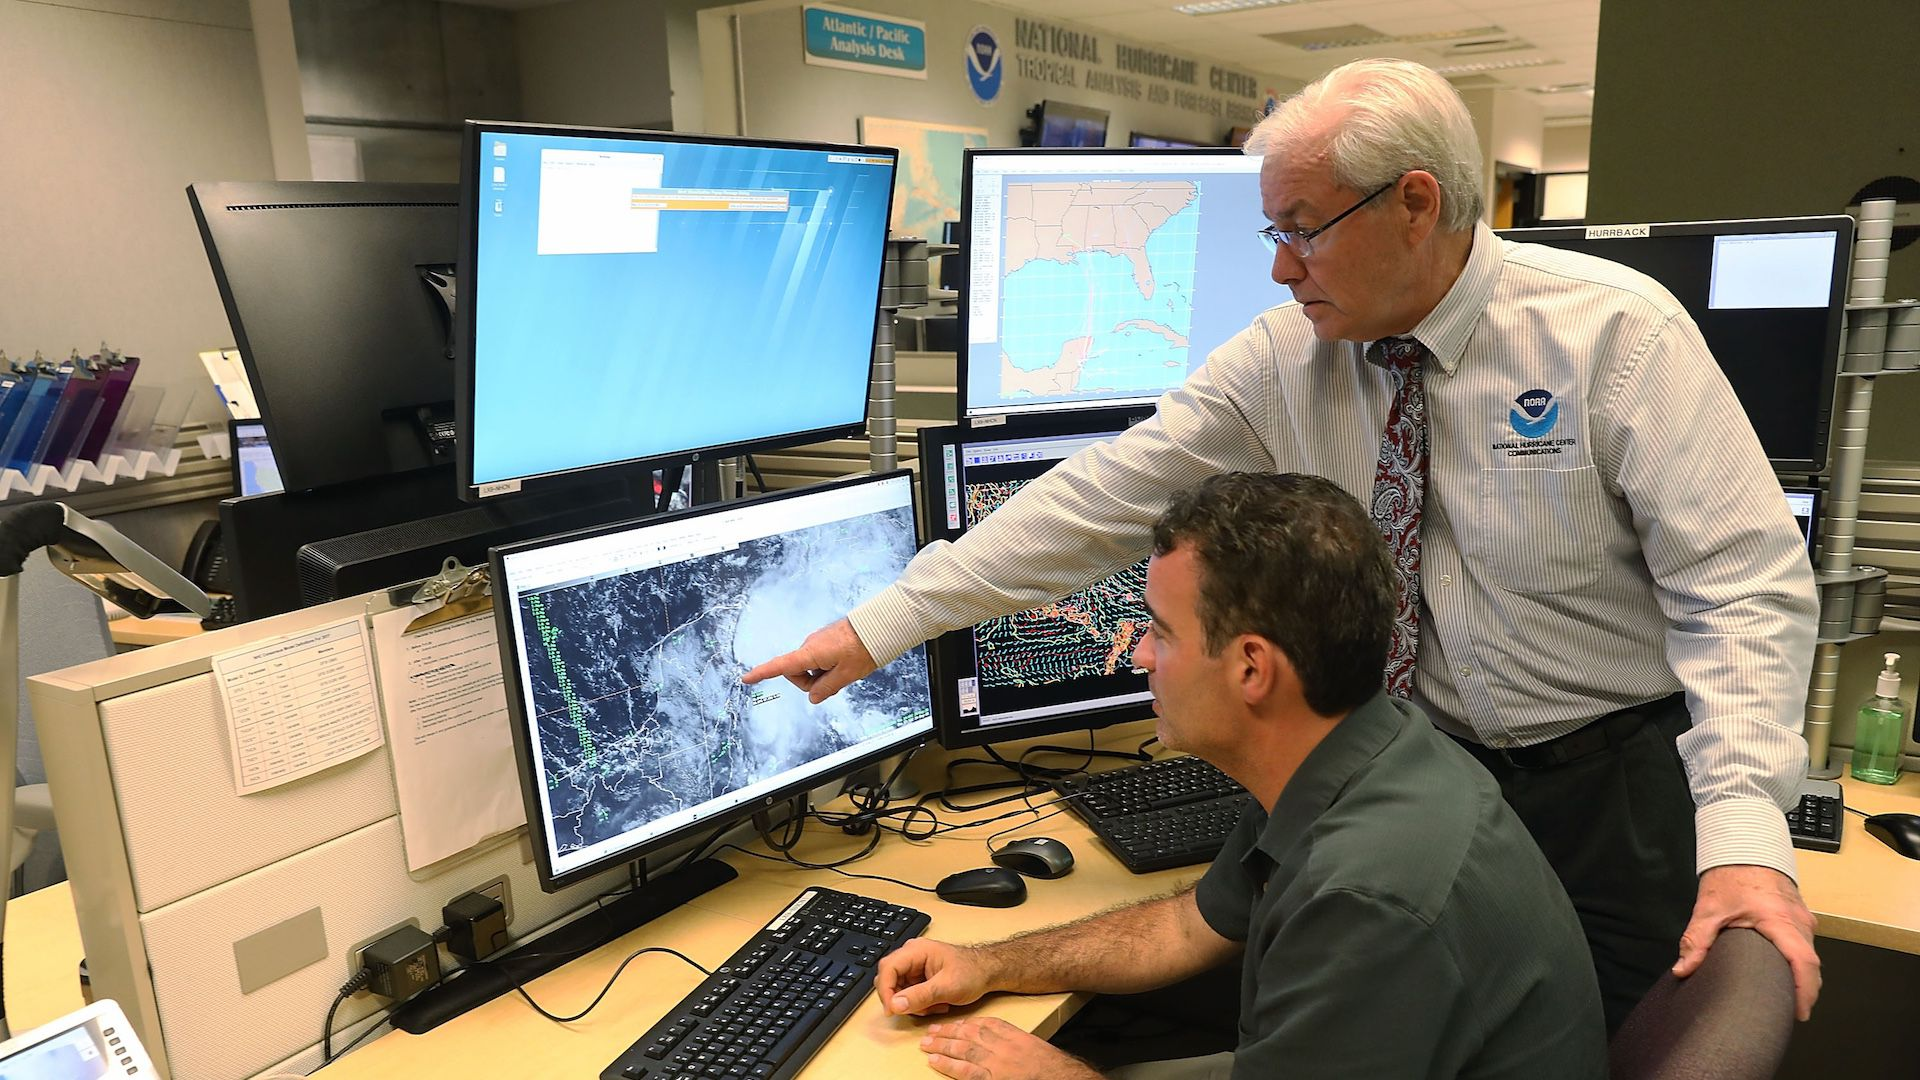 Forecasters at the National Hurricane Center monitor a new storm in the Gulf of Mexico on May 24, 2018.